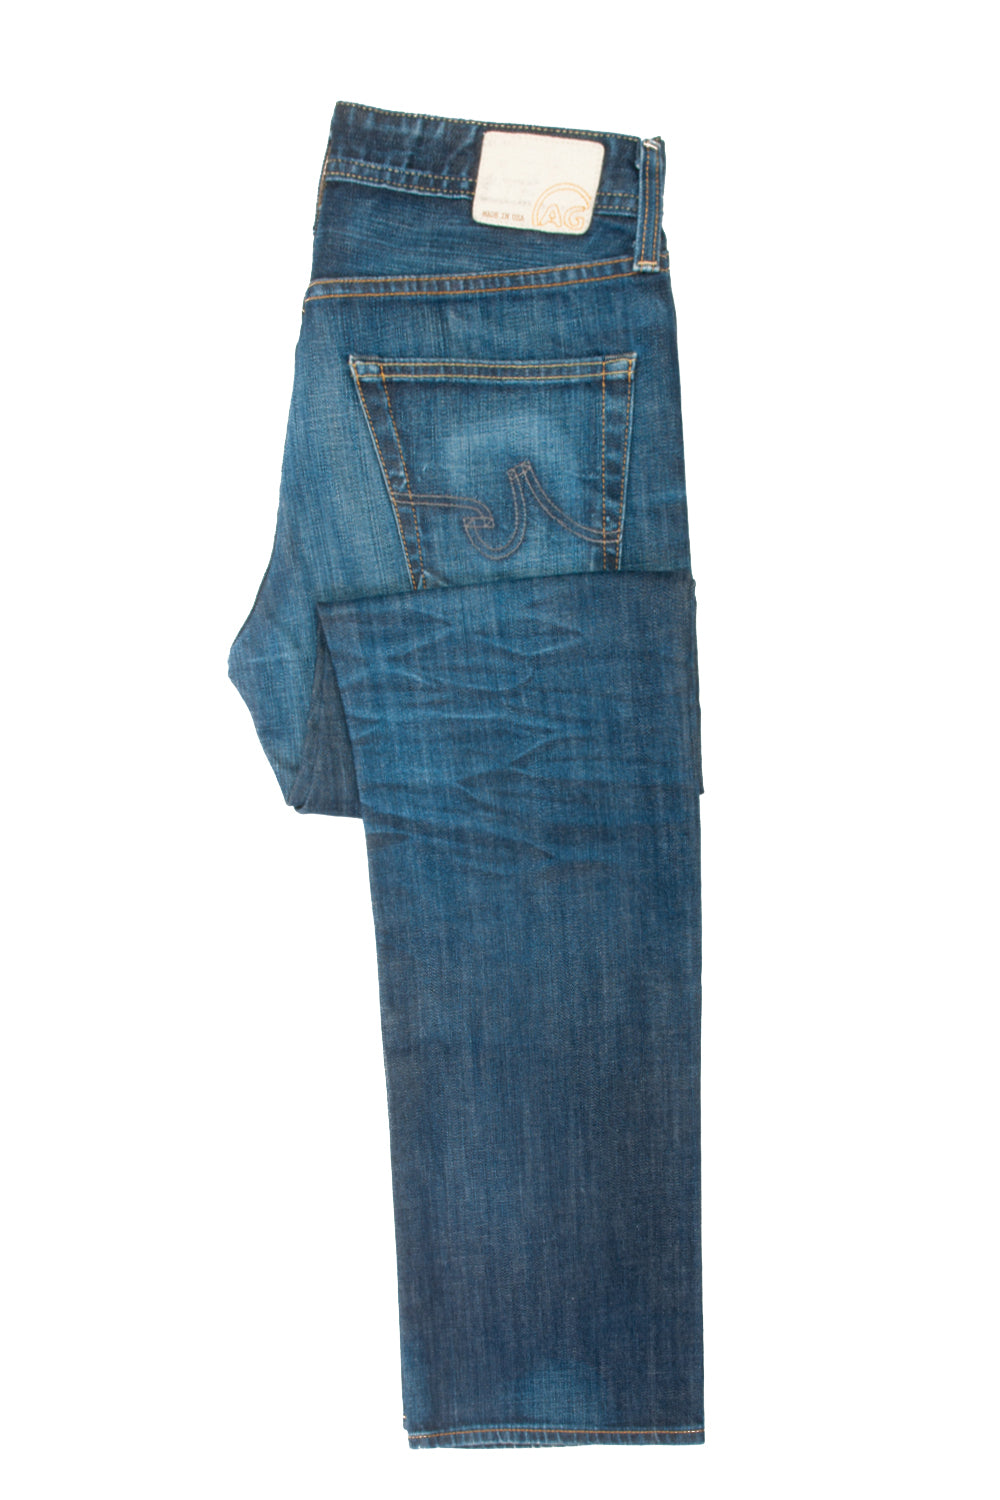 AG Adriano Goldschmied Protege Straight Leg Jeans for Luxmrkt.com Menswear Consignment Edmonton